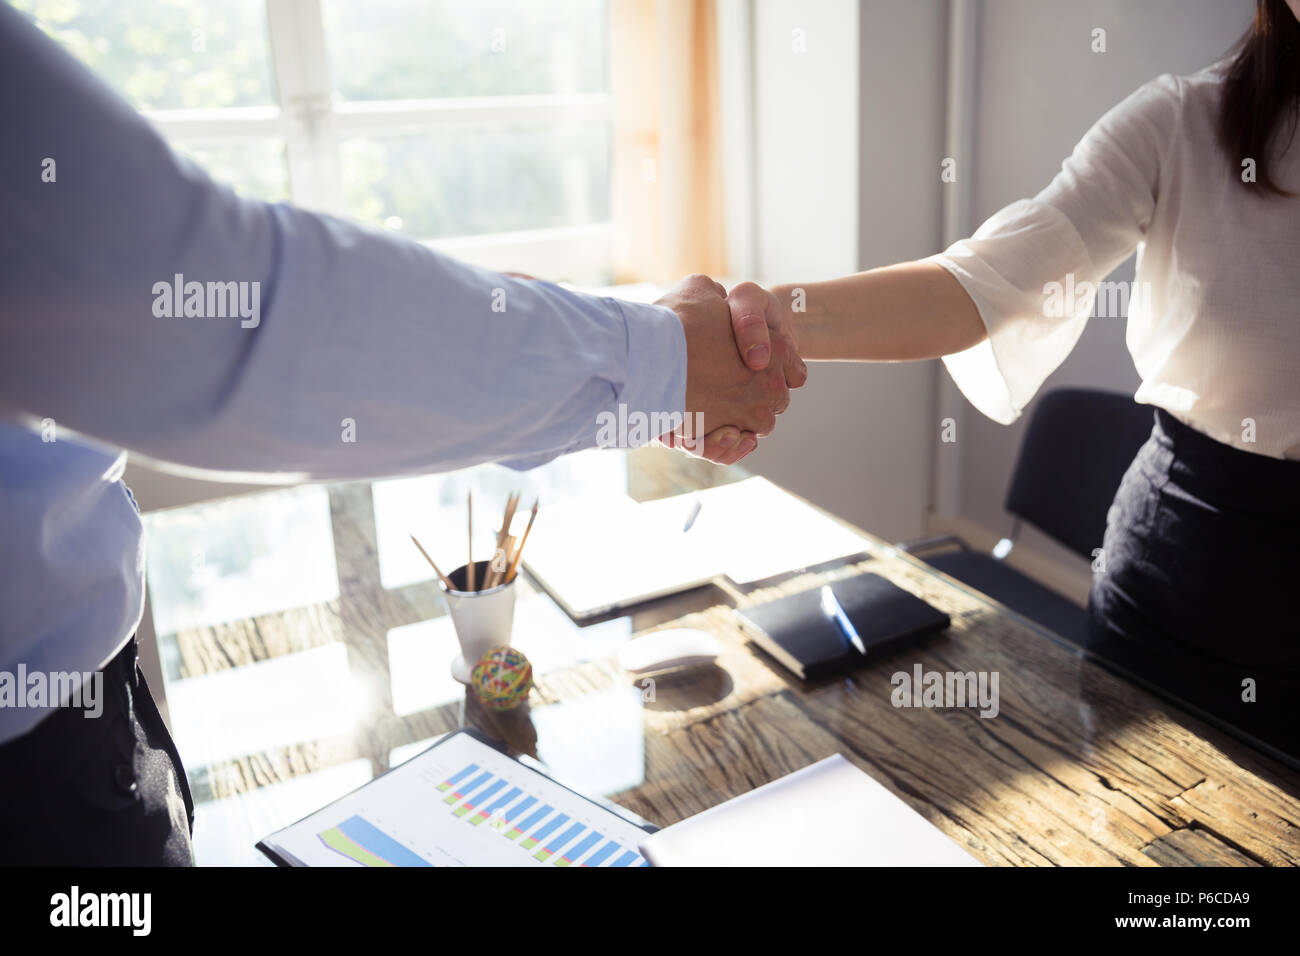 Close-up Of Two Business Partners Shaking Hands Over Desk In Office - Stock Image